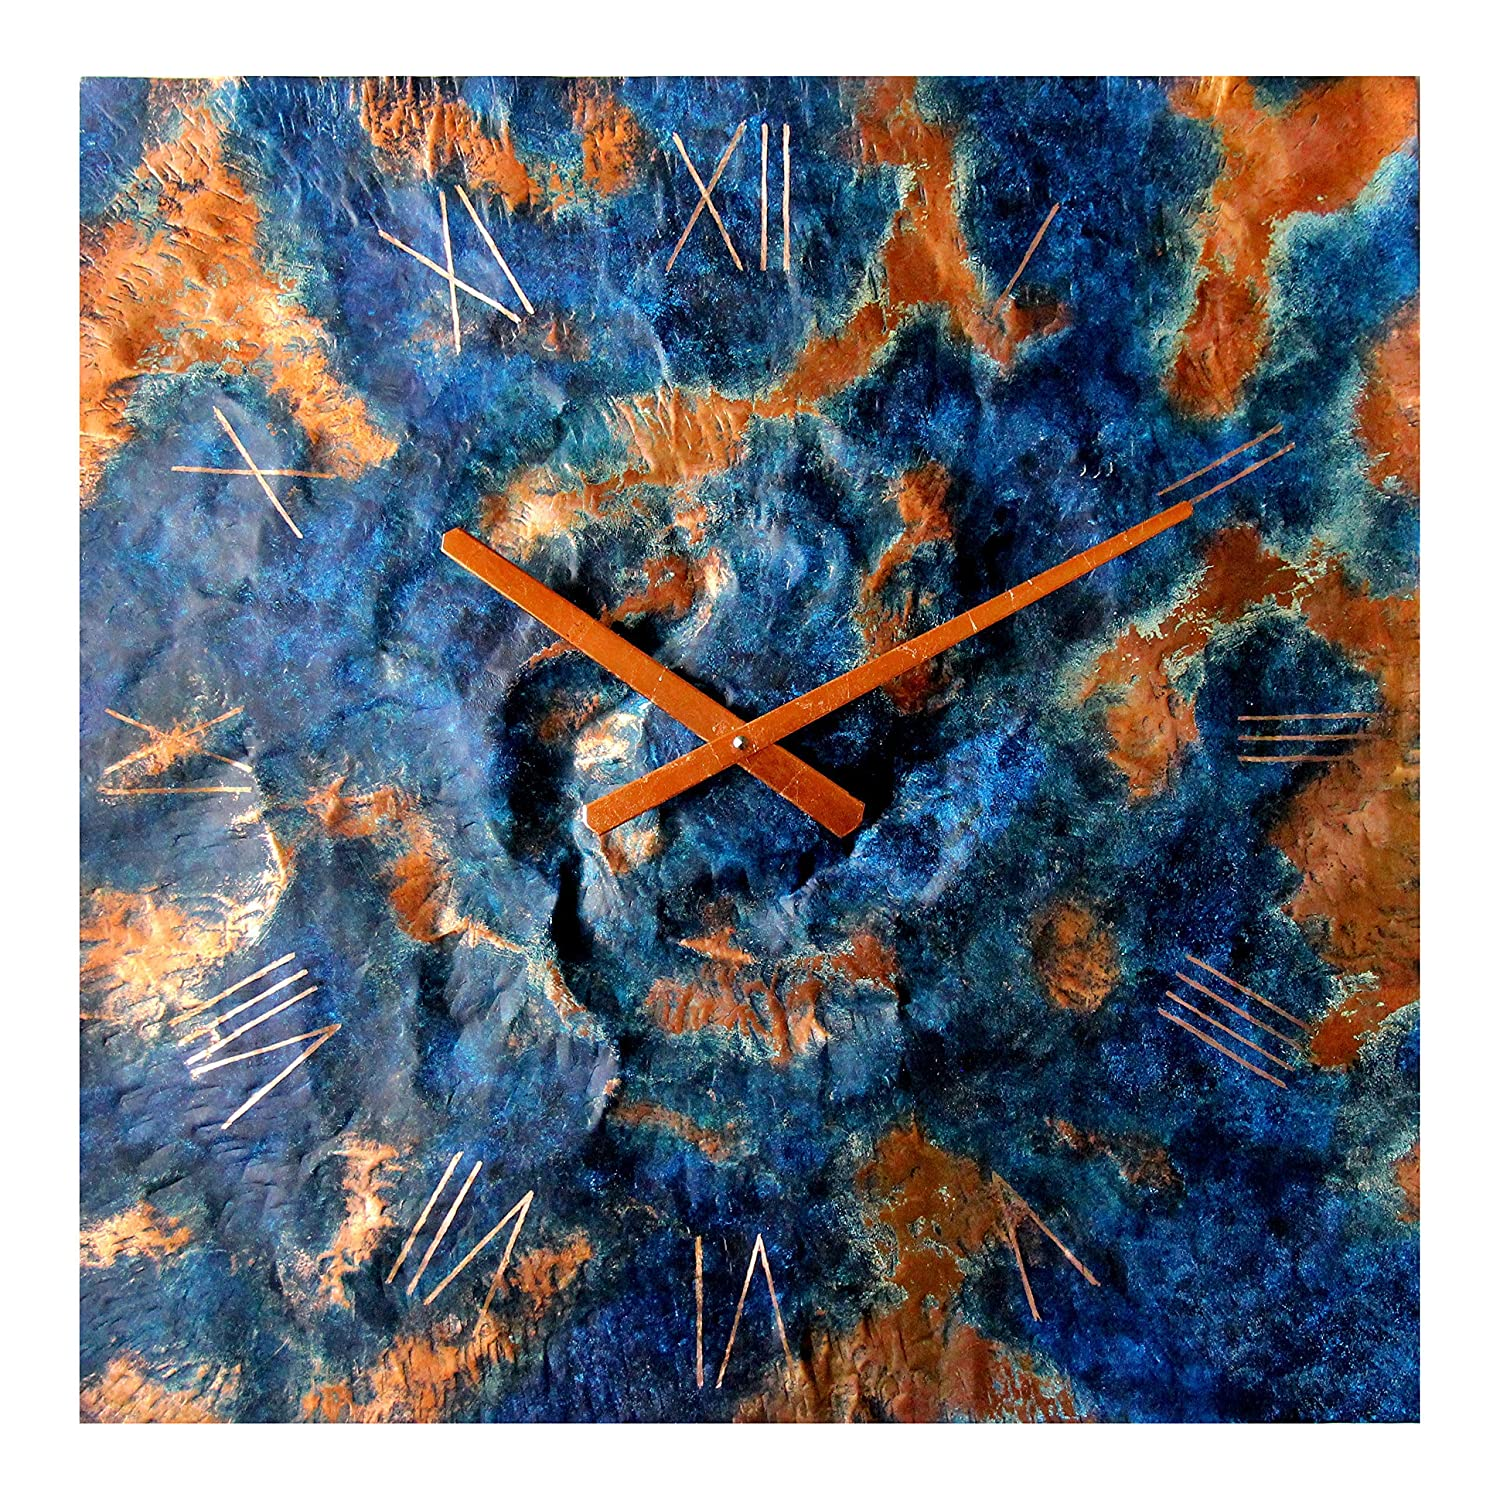 Oversized Square Copper Rustic Wall Clock 24-inch - Silent Non Ticking Gift for Home/Office/Kitchen/Bedroom/Living Room